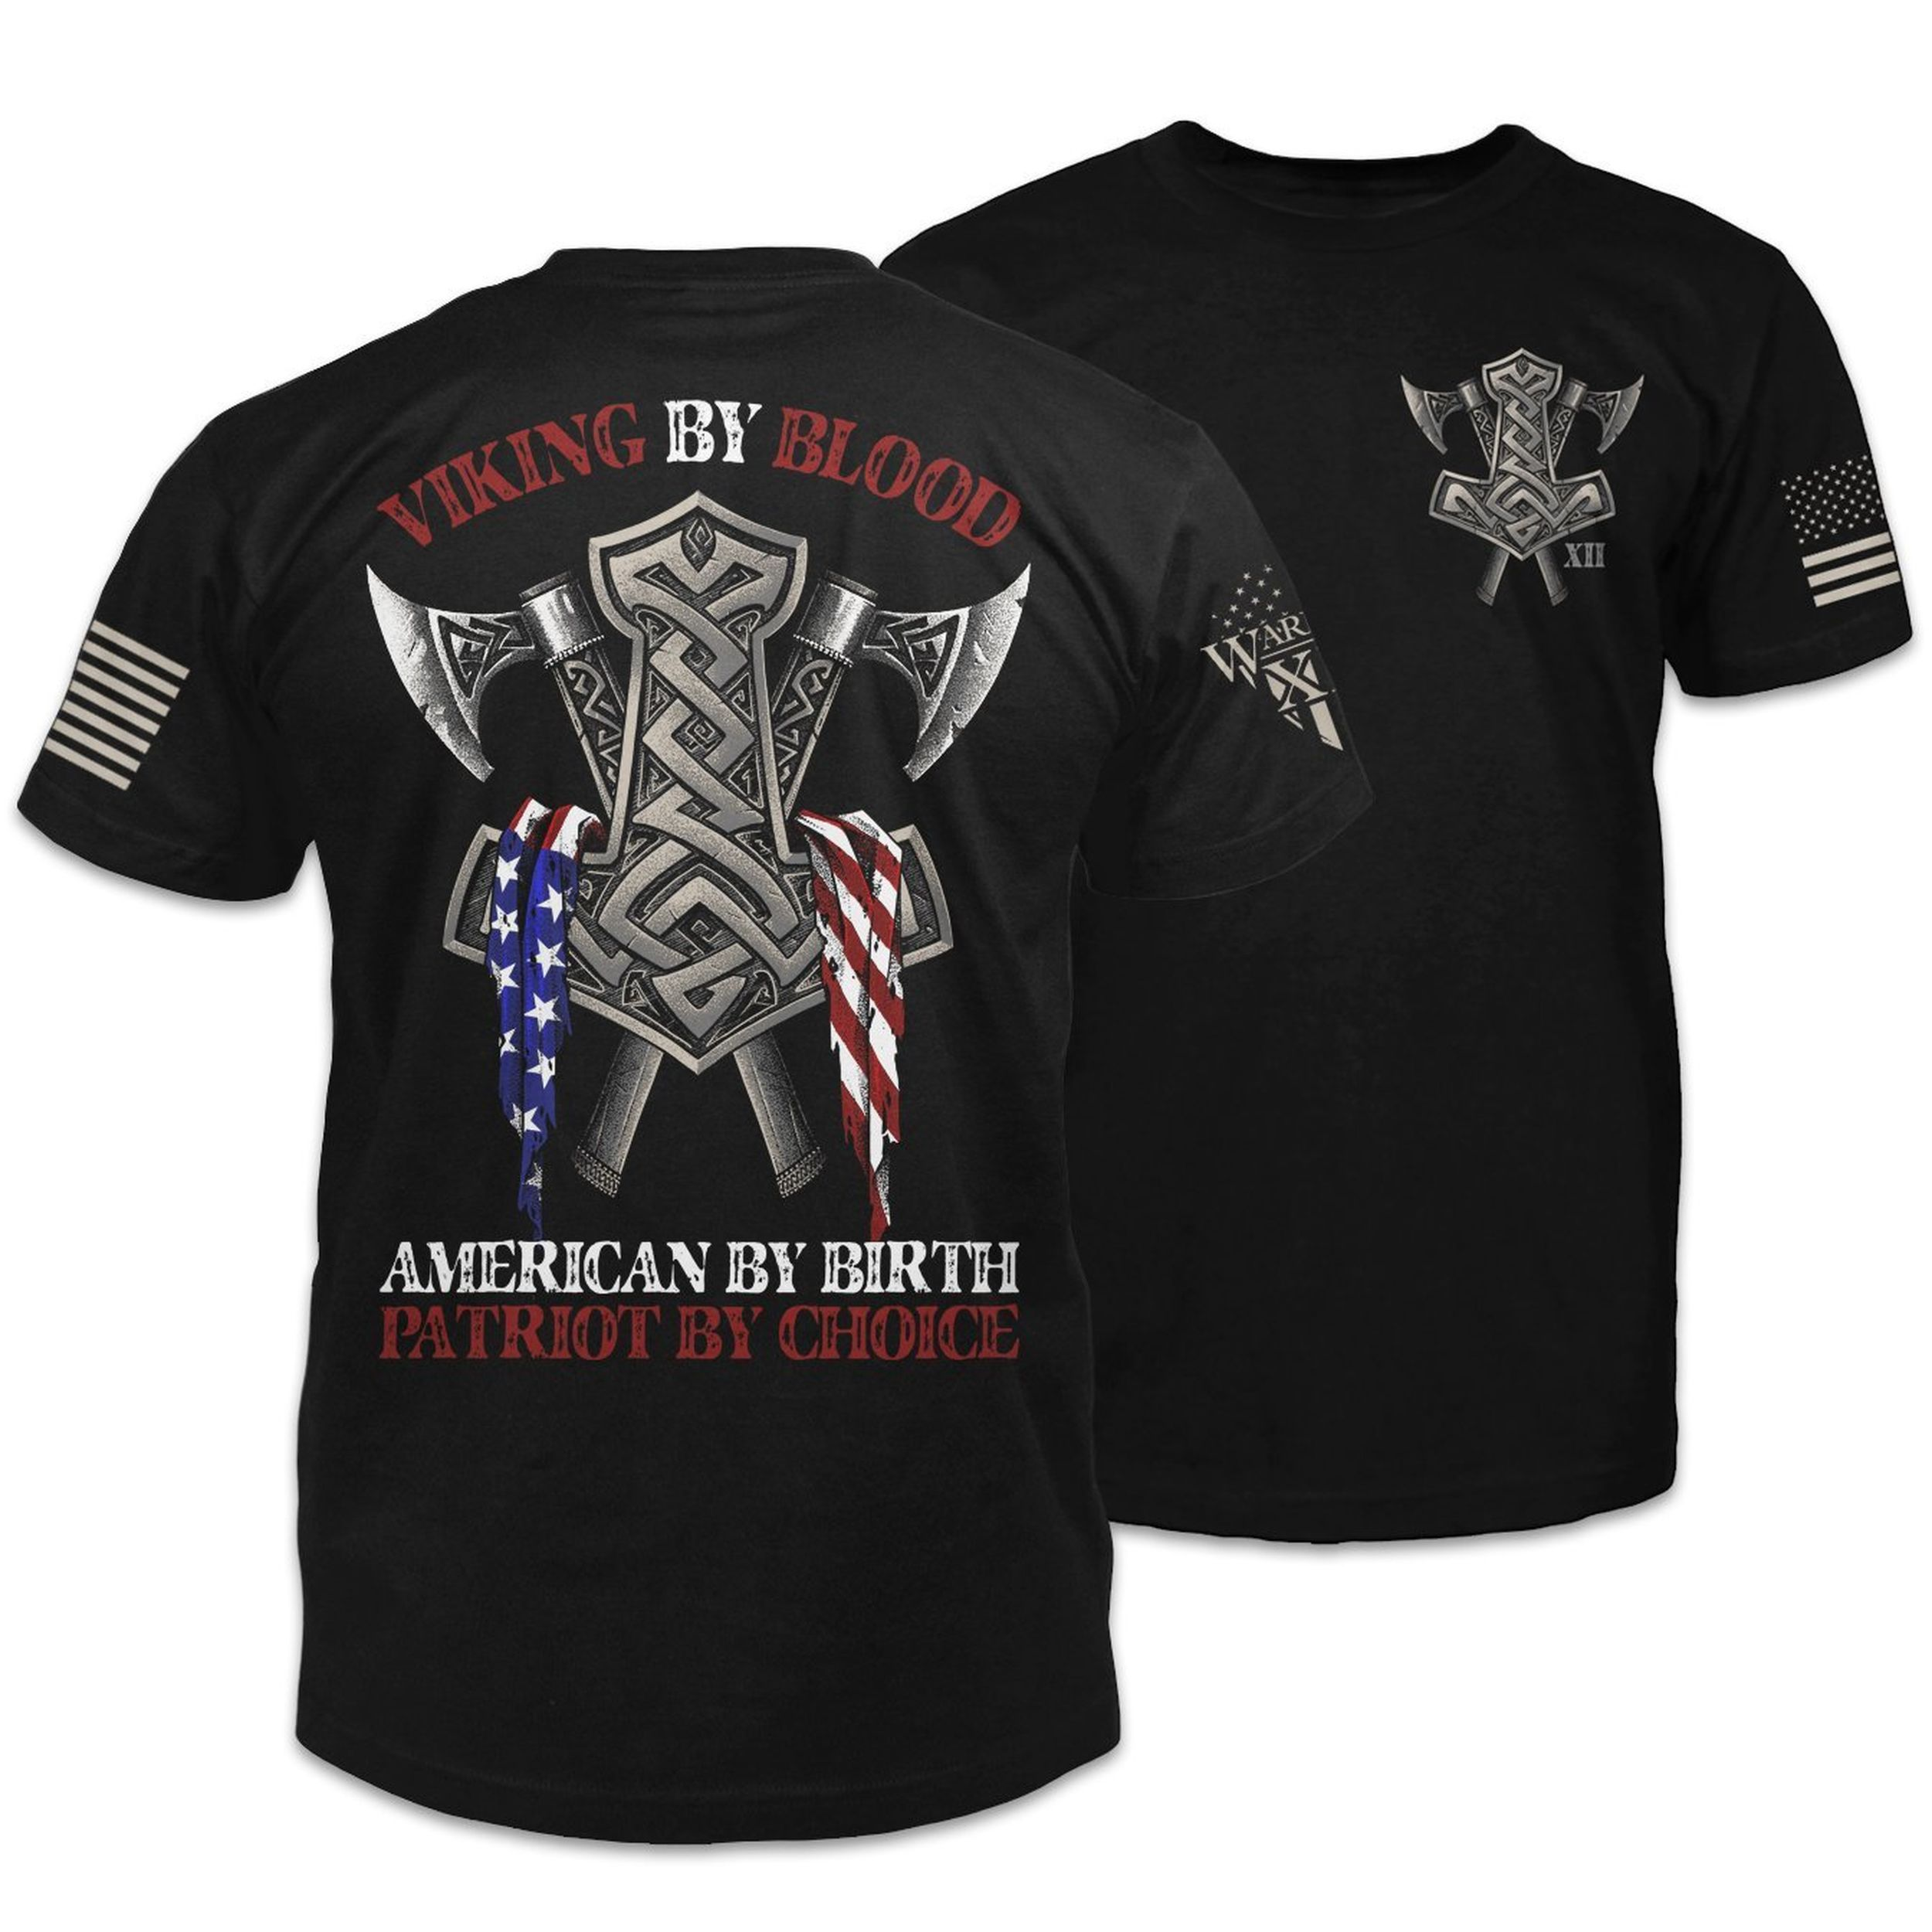 Viking by blood american by birth patriot by choice shirt